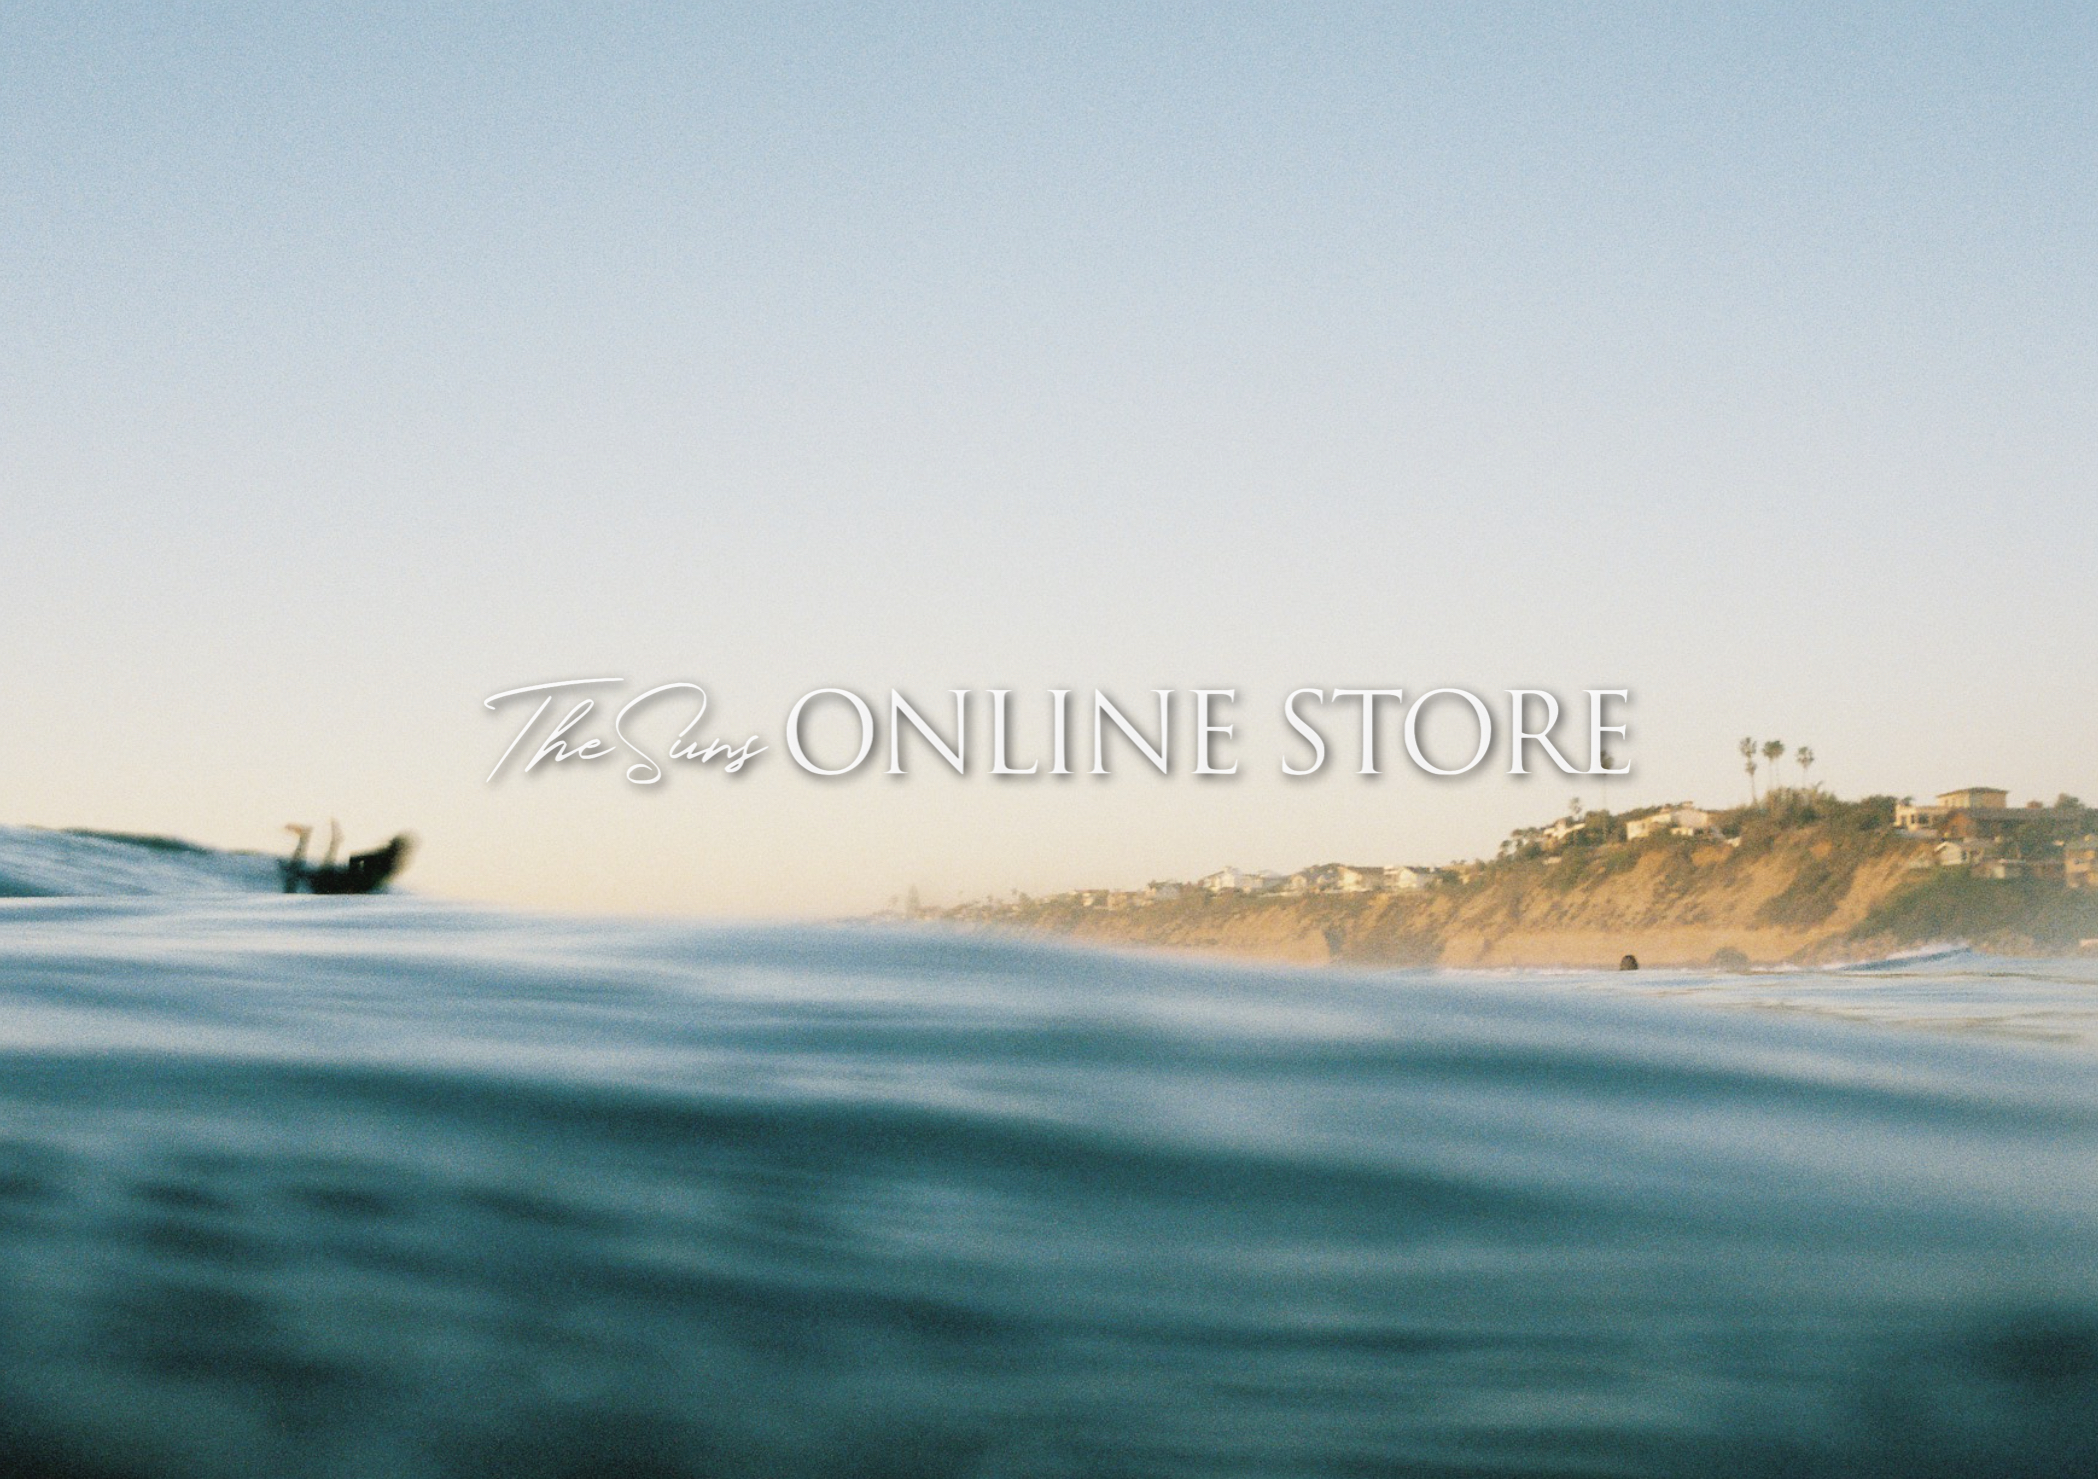 THE SUNS ONLINE STORE RENEWAL OPEN!!